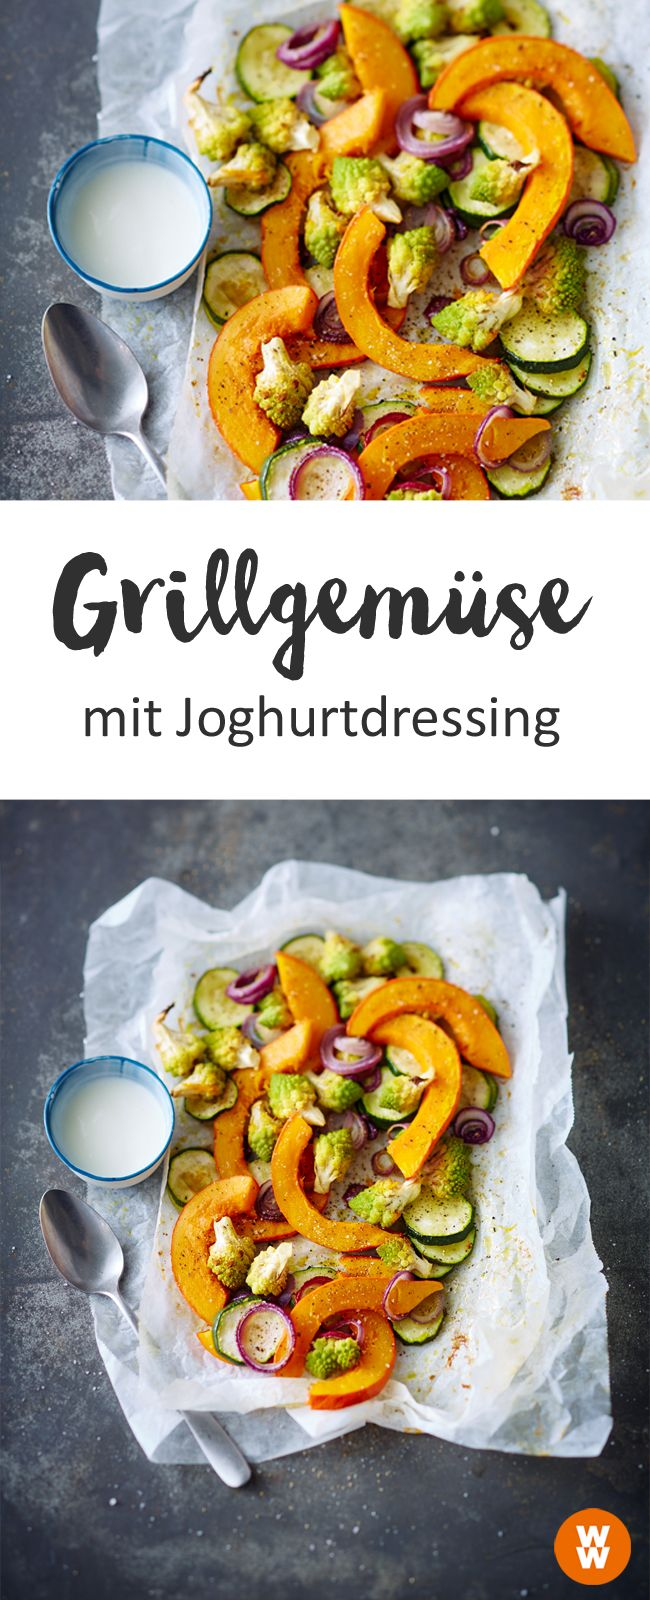 Grillgemüse mit Joghurtdressing, Grill, Barbecue | Weight Watchers